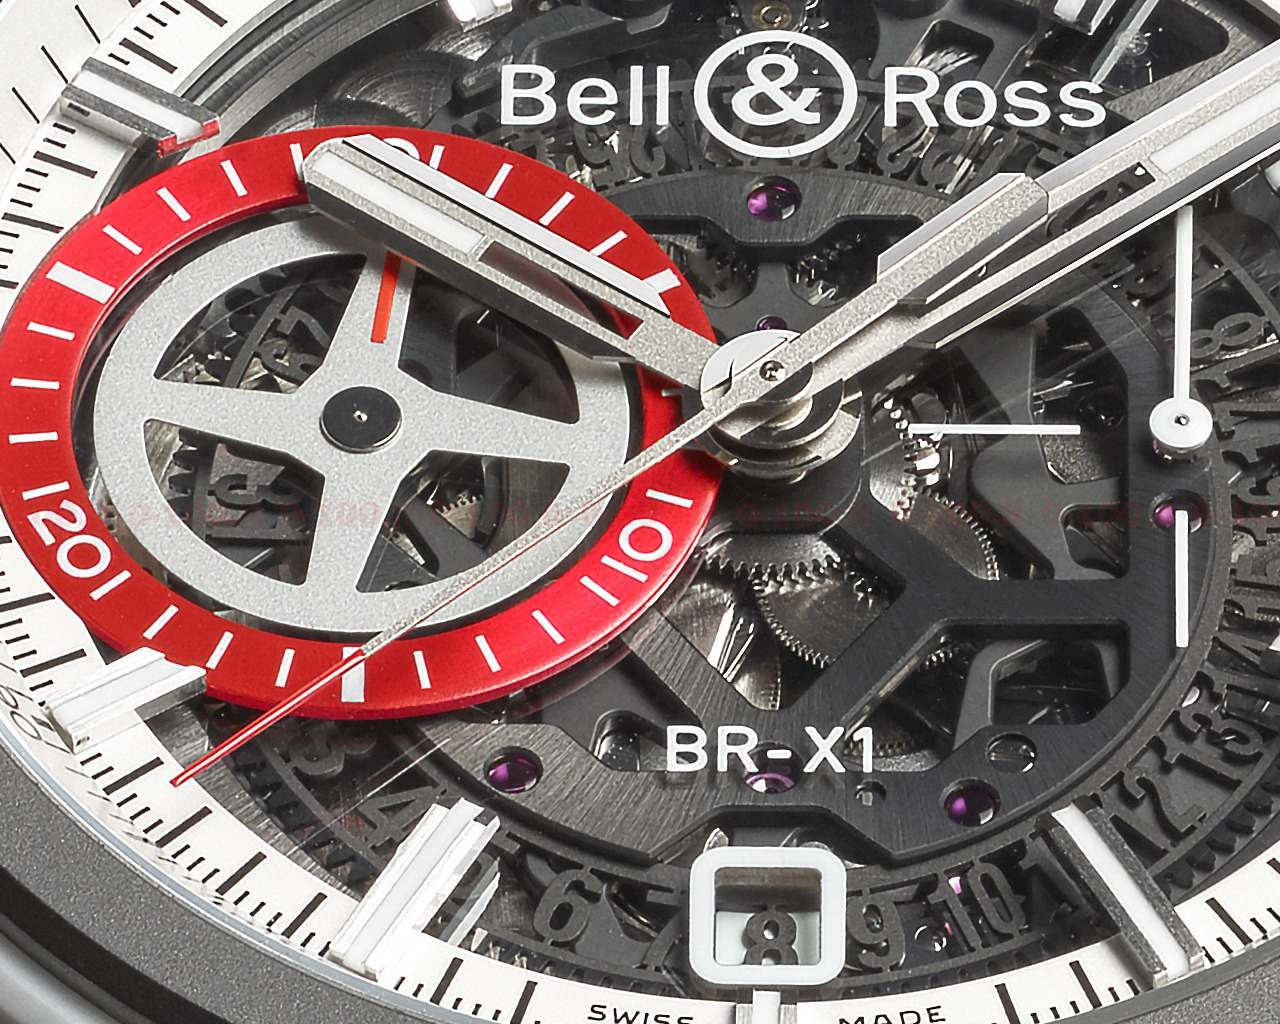 Bell & Ross BR-X1 White Hawk Limited Edition_Ref. BRX1-WHC-TI_price_0-1004